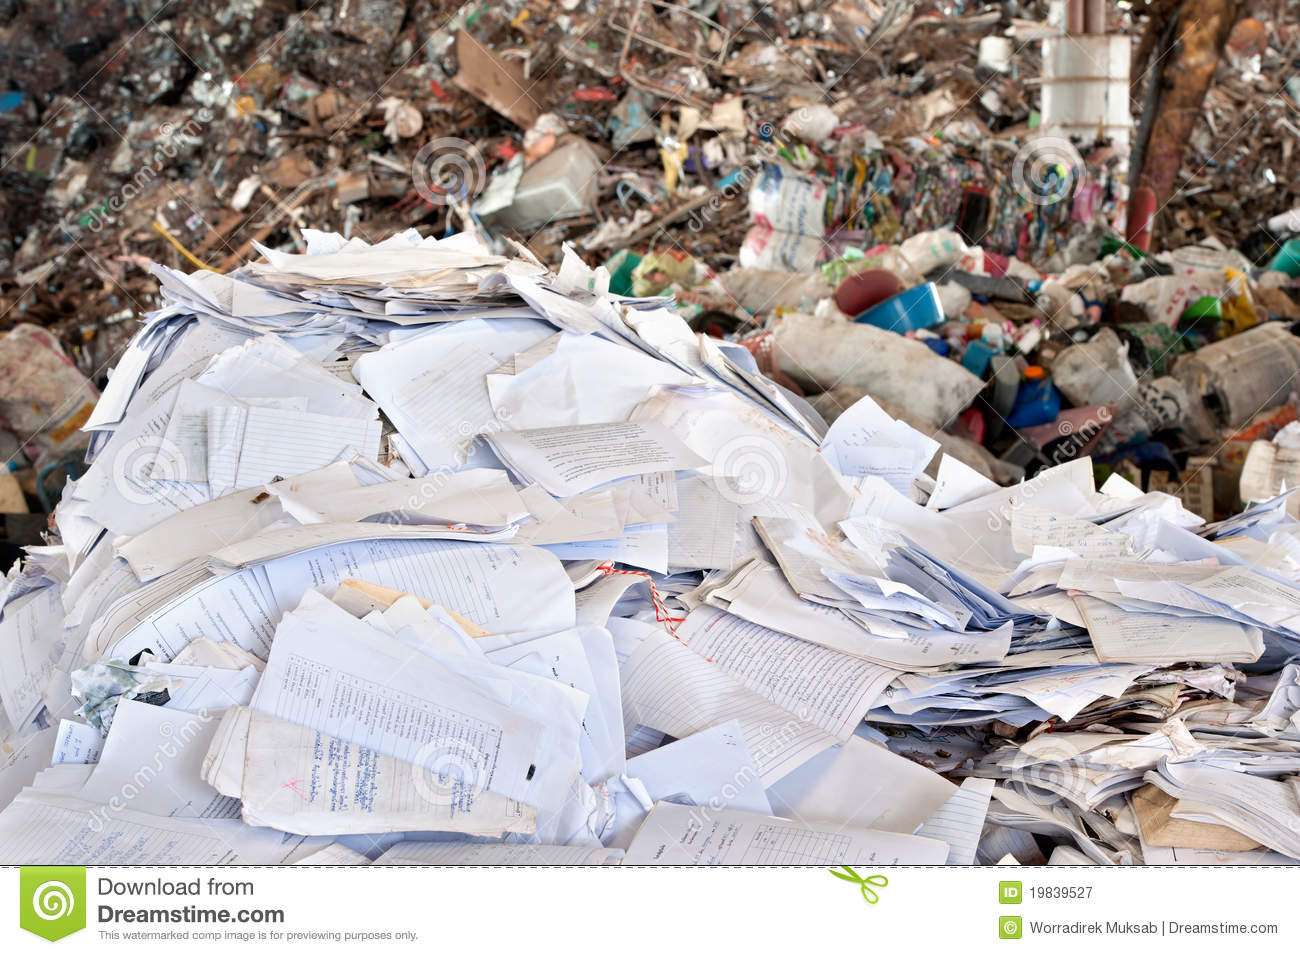 thesis on waste management in africa A new screening metric to benchmark the sustainability of municipal solid waste management systems scott m kaufman submitted in partial fulfillment of the.